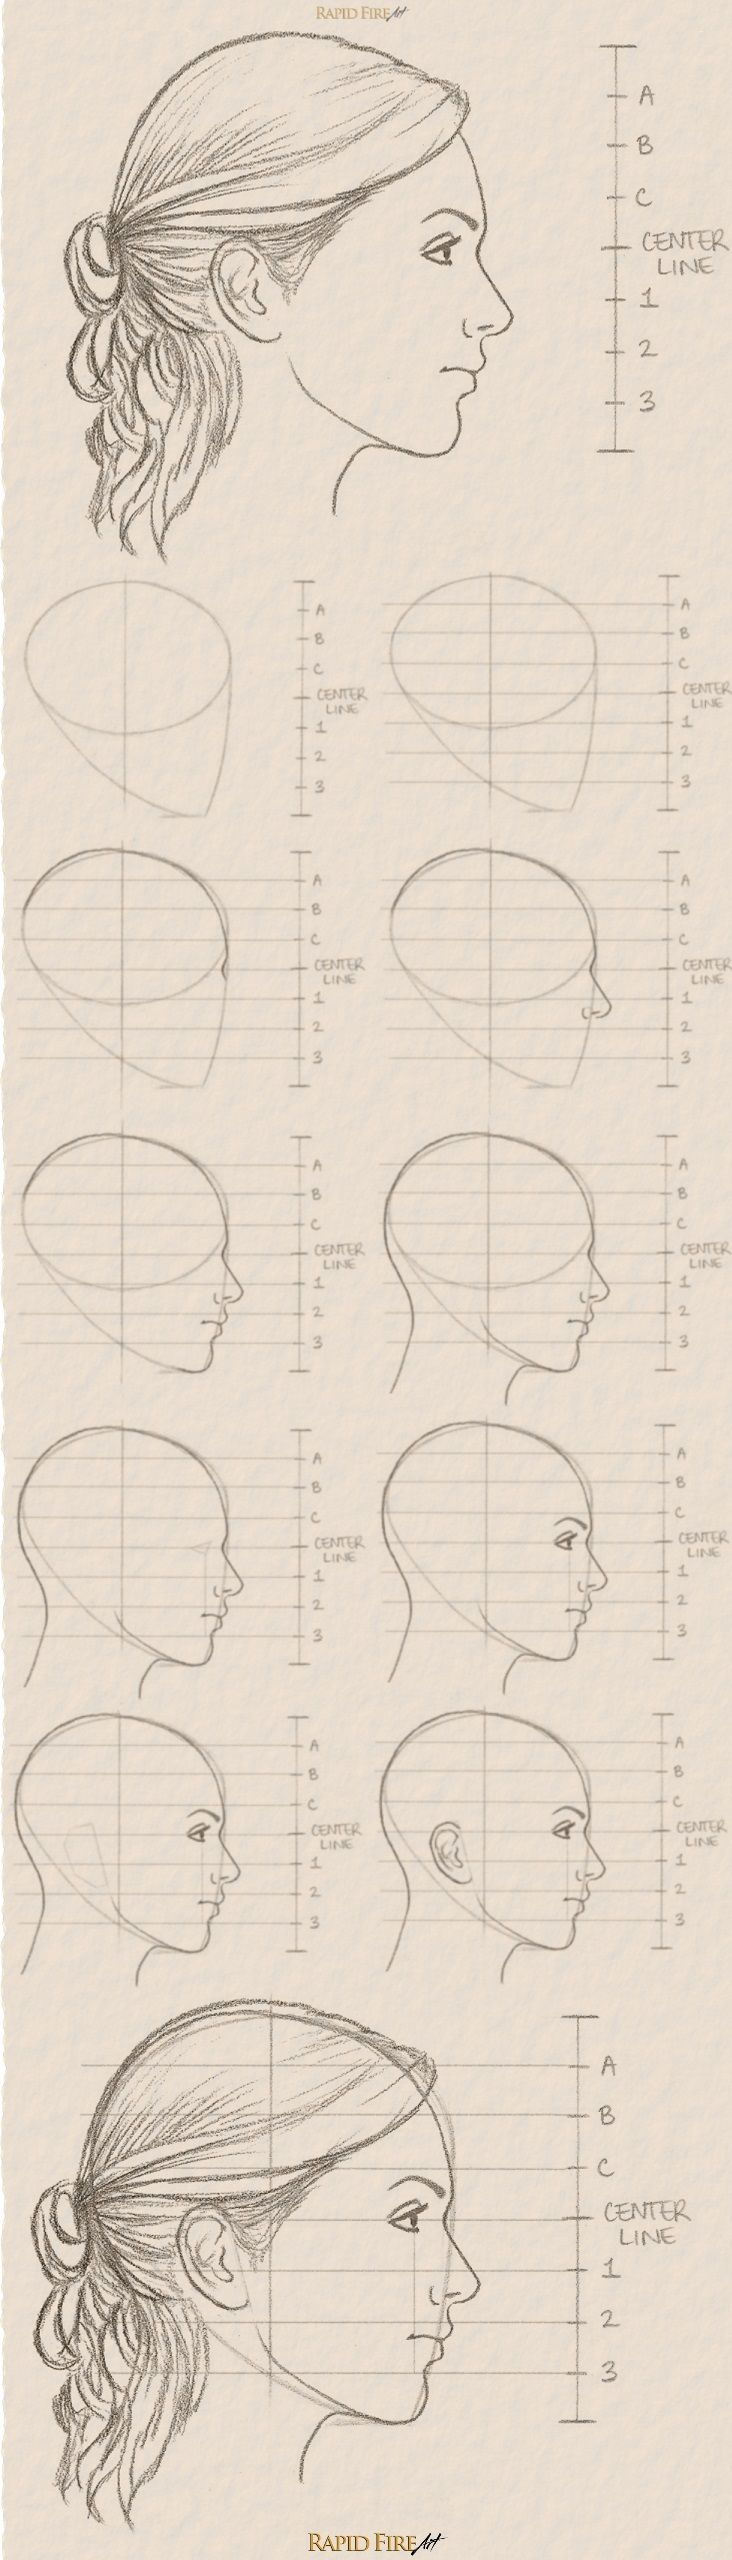 how to draw a female face side view how to draw a face pencil drawings drawing techniques drawing tips [ 732 x 2560 Pixel ]